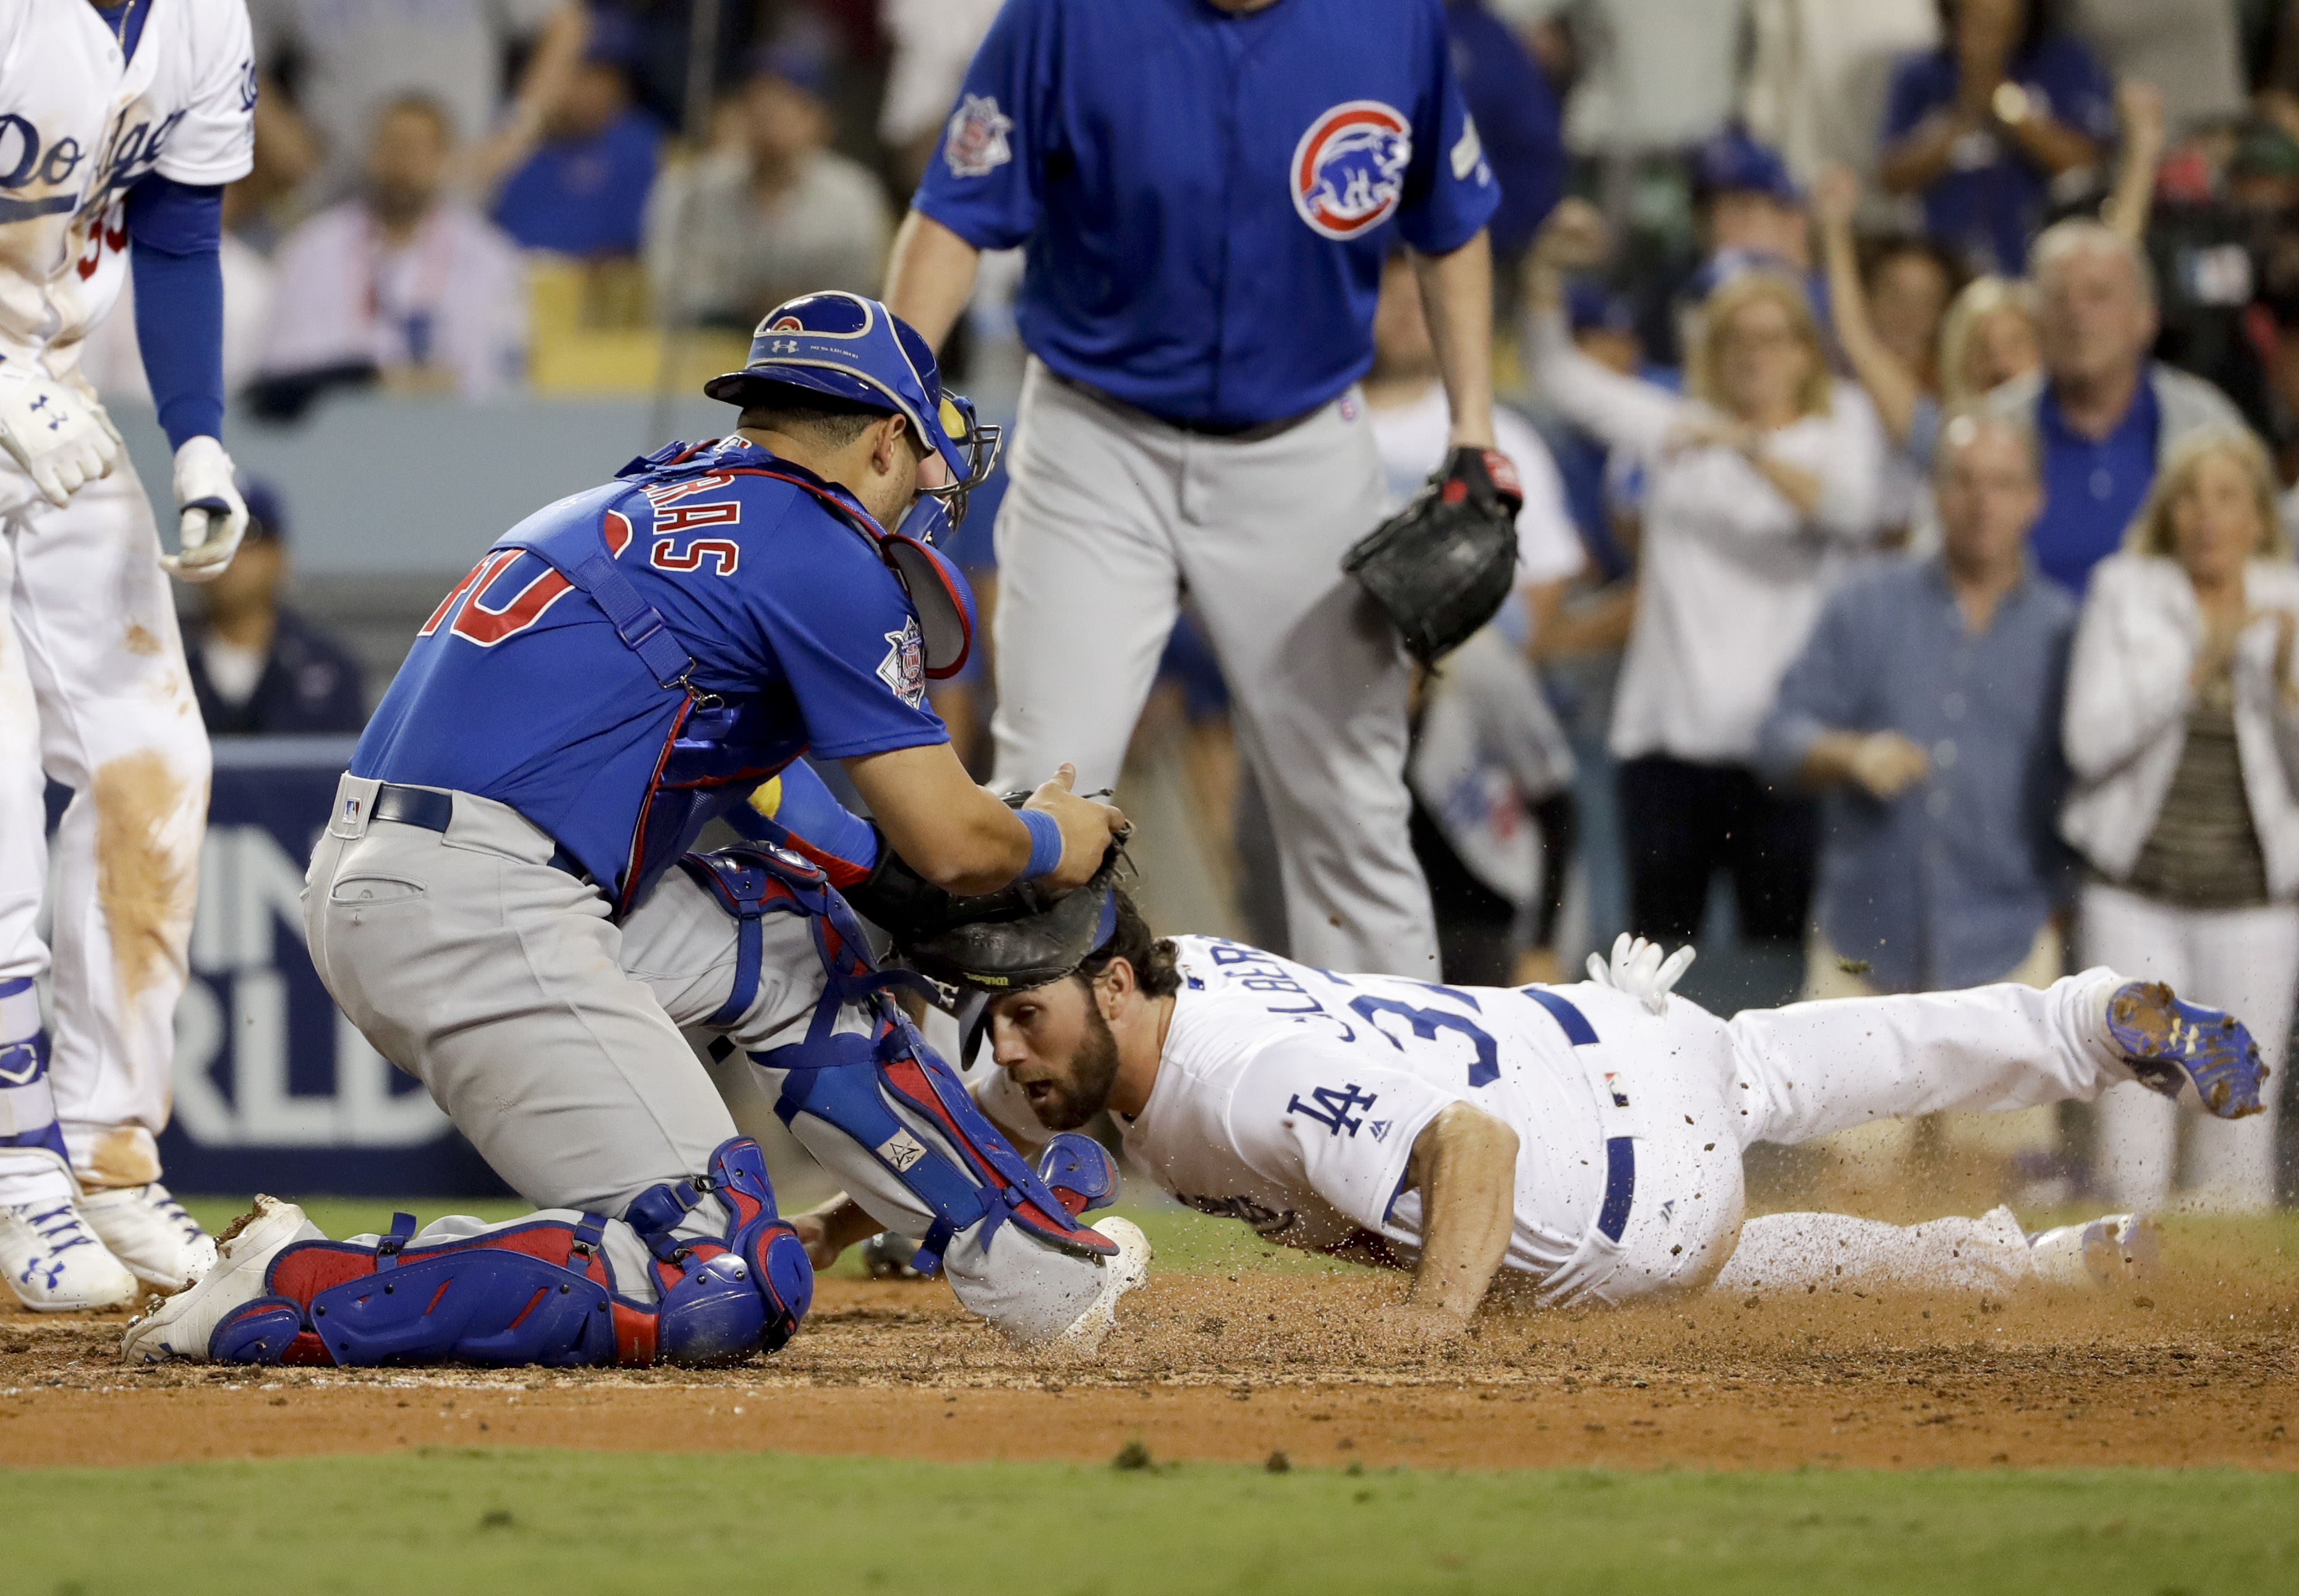 Joe Maddon blows gasket after home-plate collision rule goes against Cubs